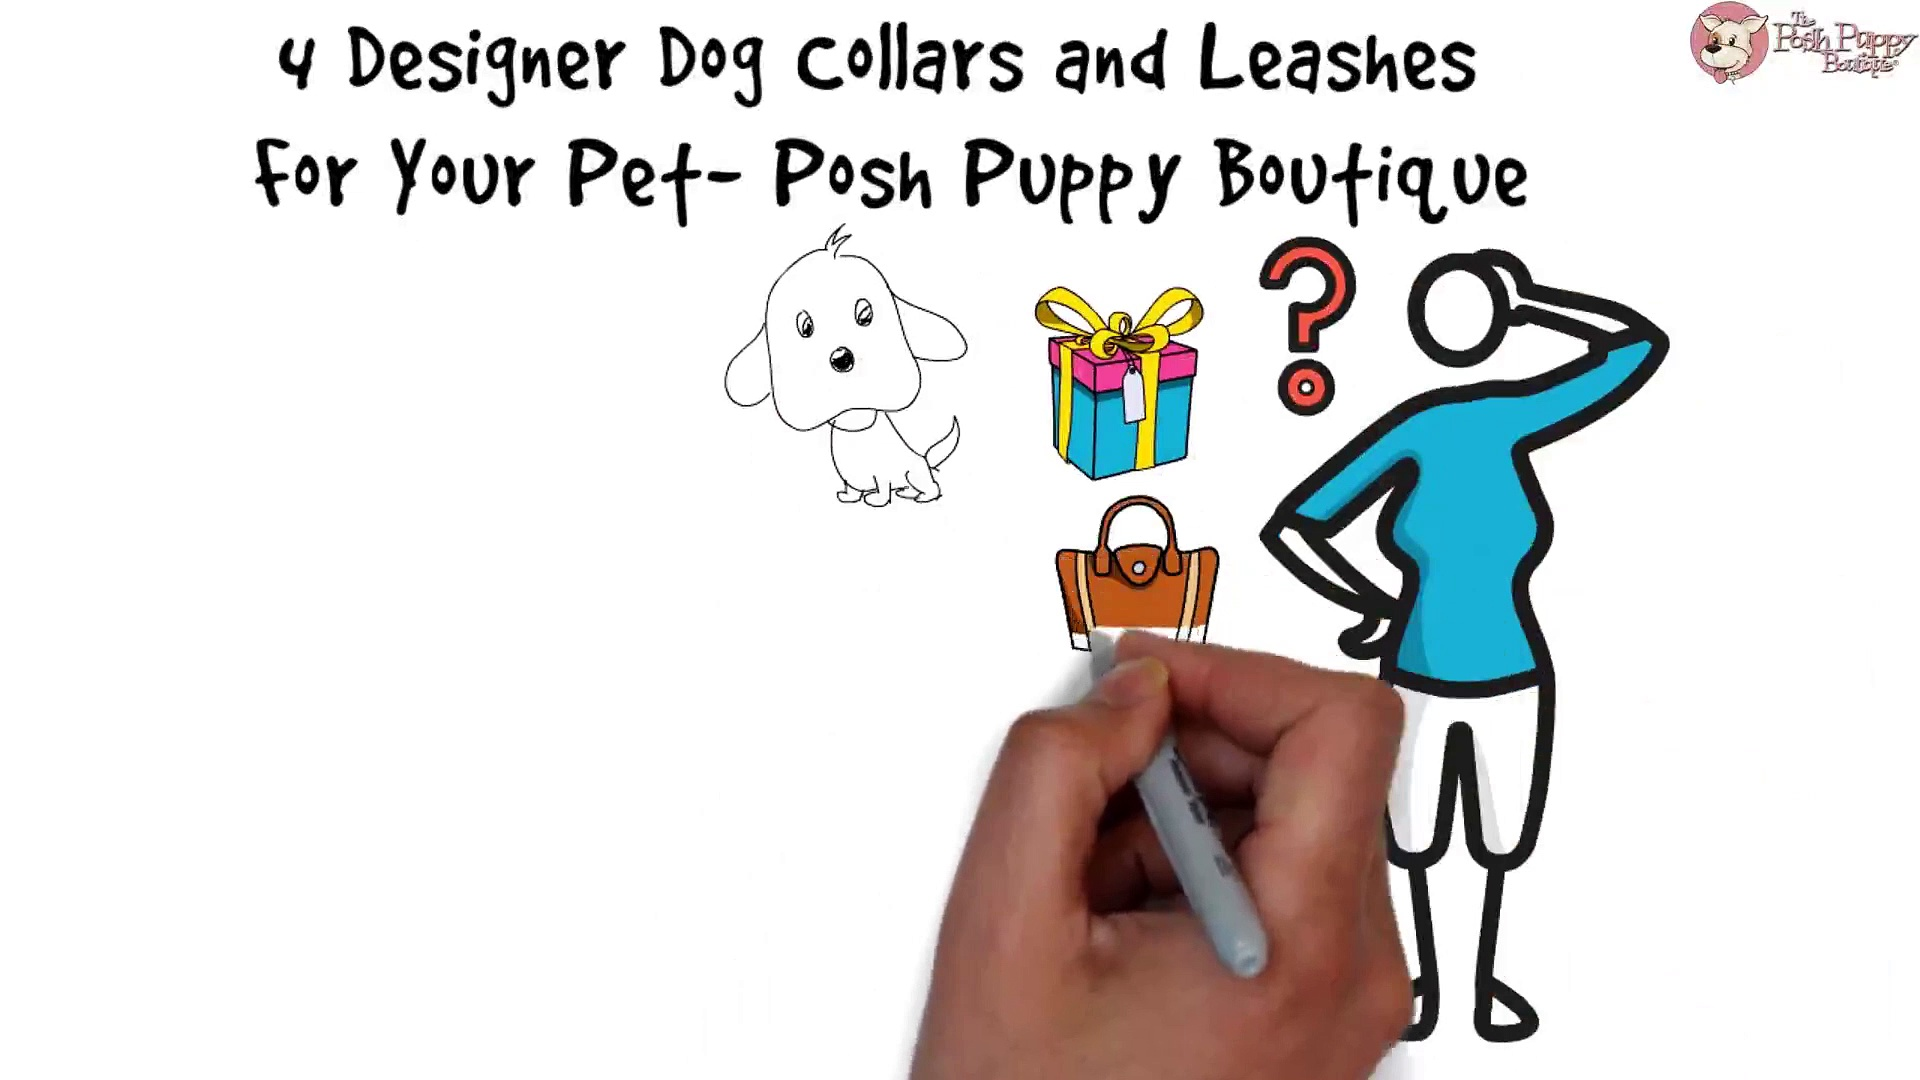 4 Designer Dog Collars and Leashes For Your Pet- Posh Puppy Boutique